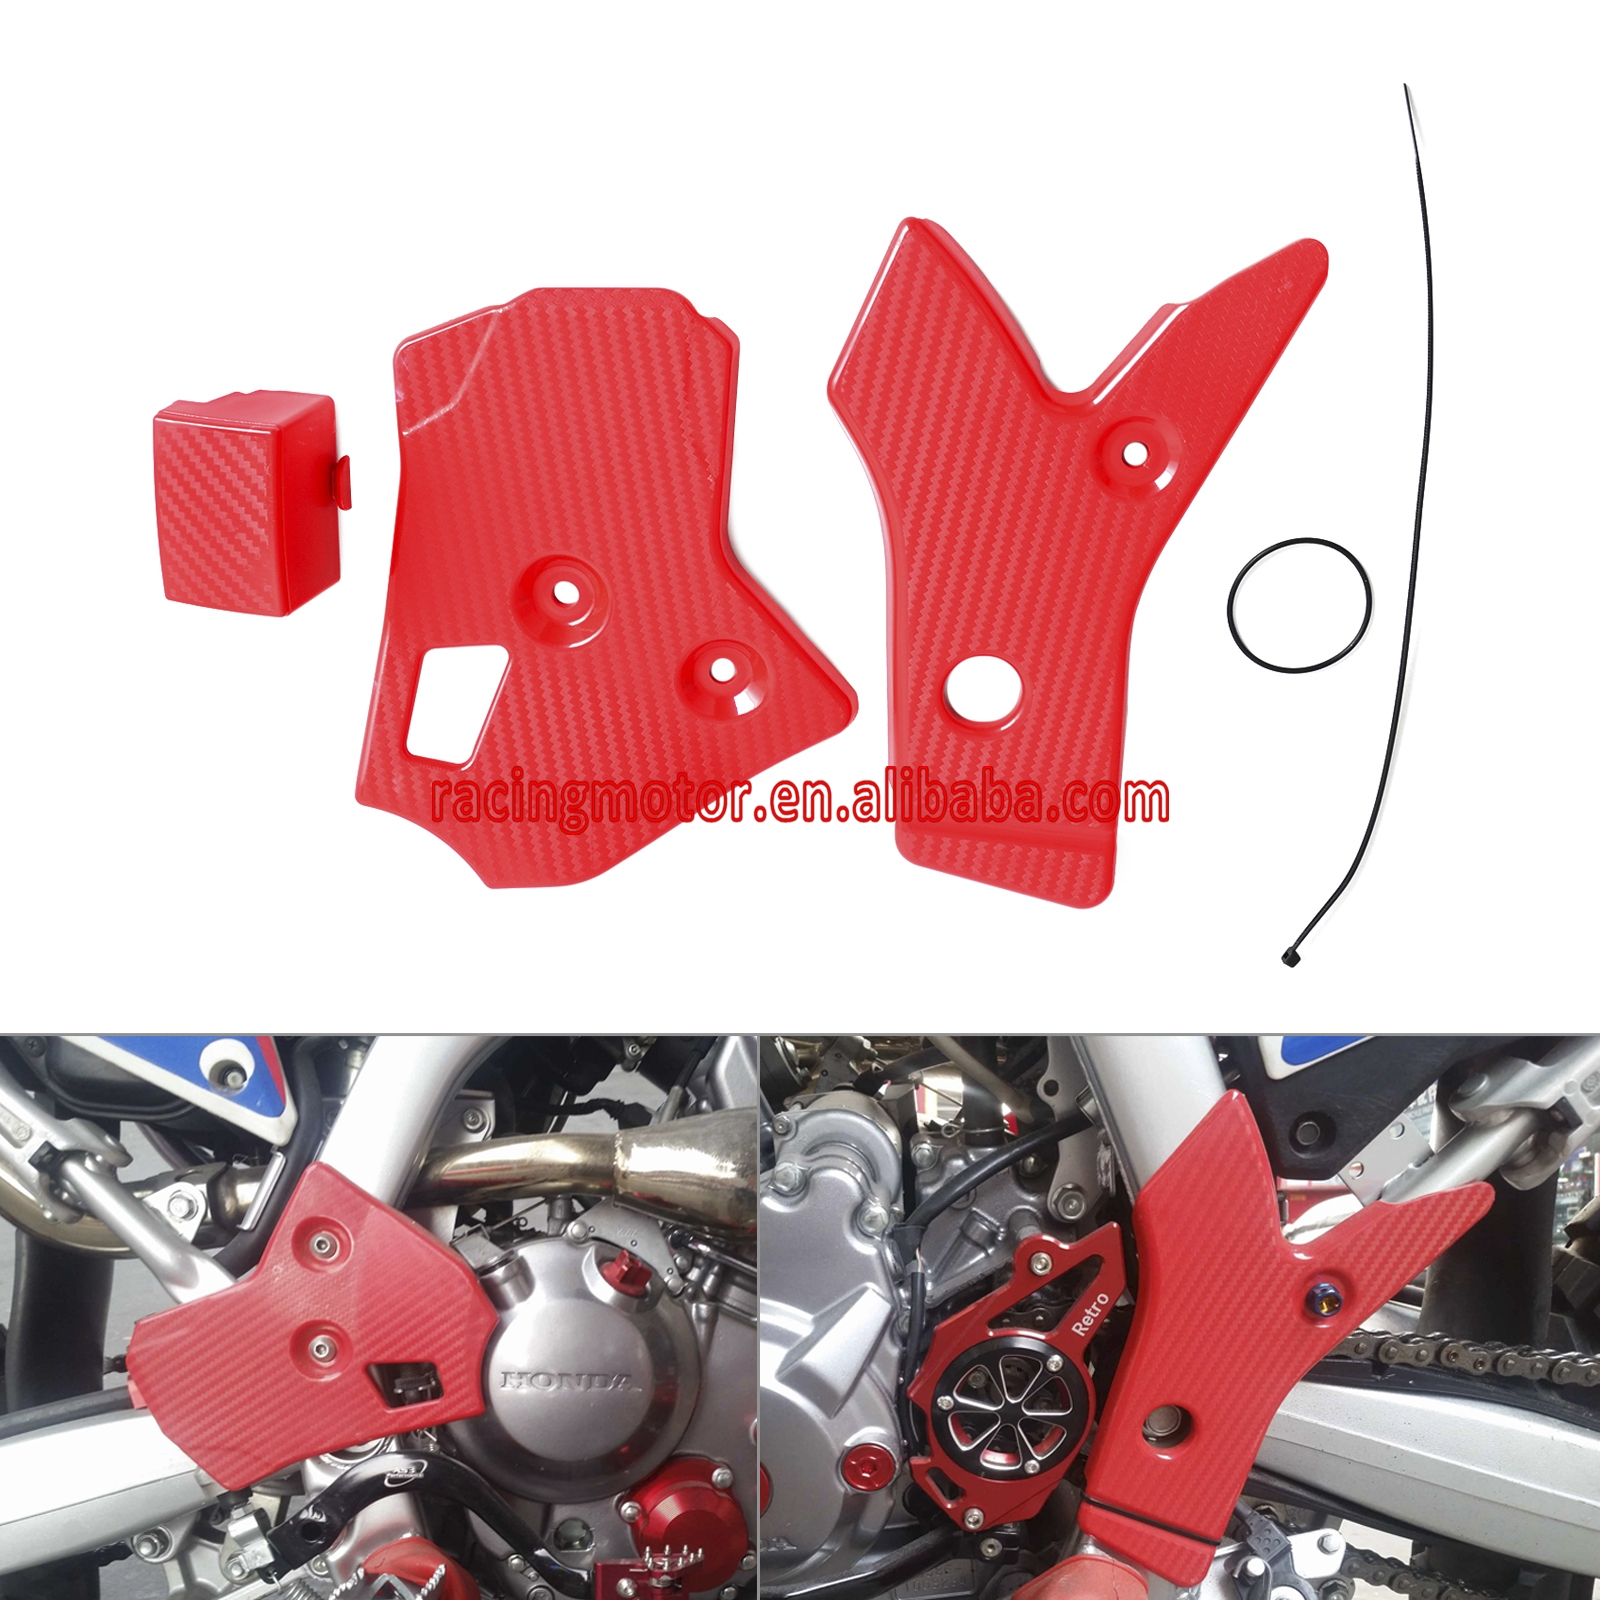 Motorcycle Frame Protector Dirt Bike For Honda CRF250L CRF250M 2012   2015  2013 2014 CRF250 L/M